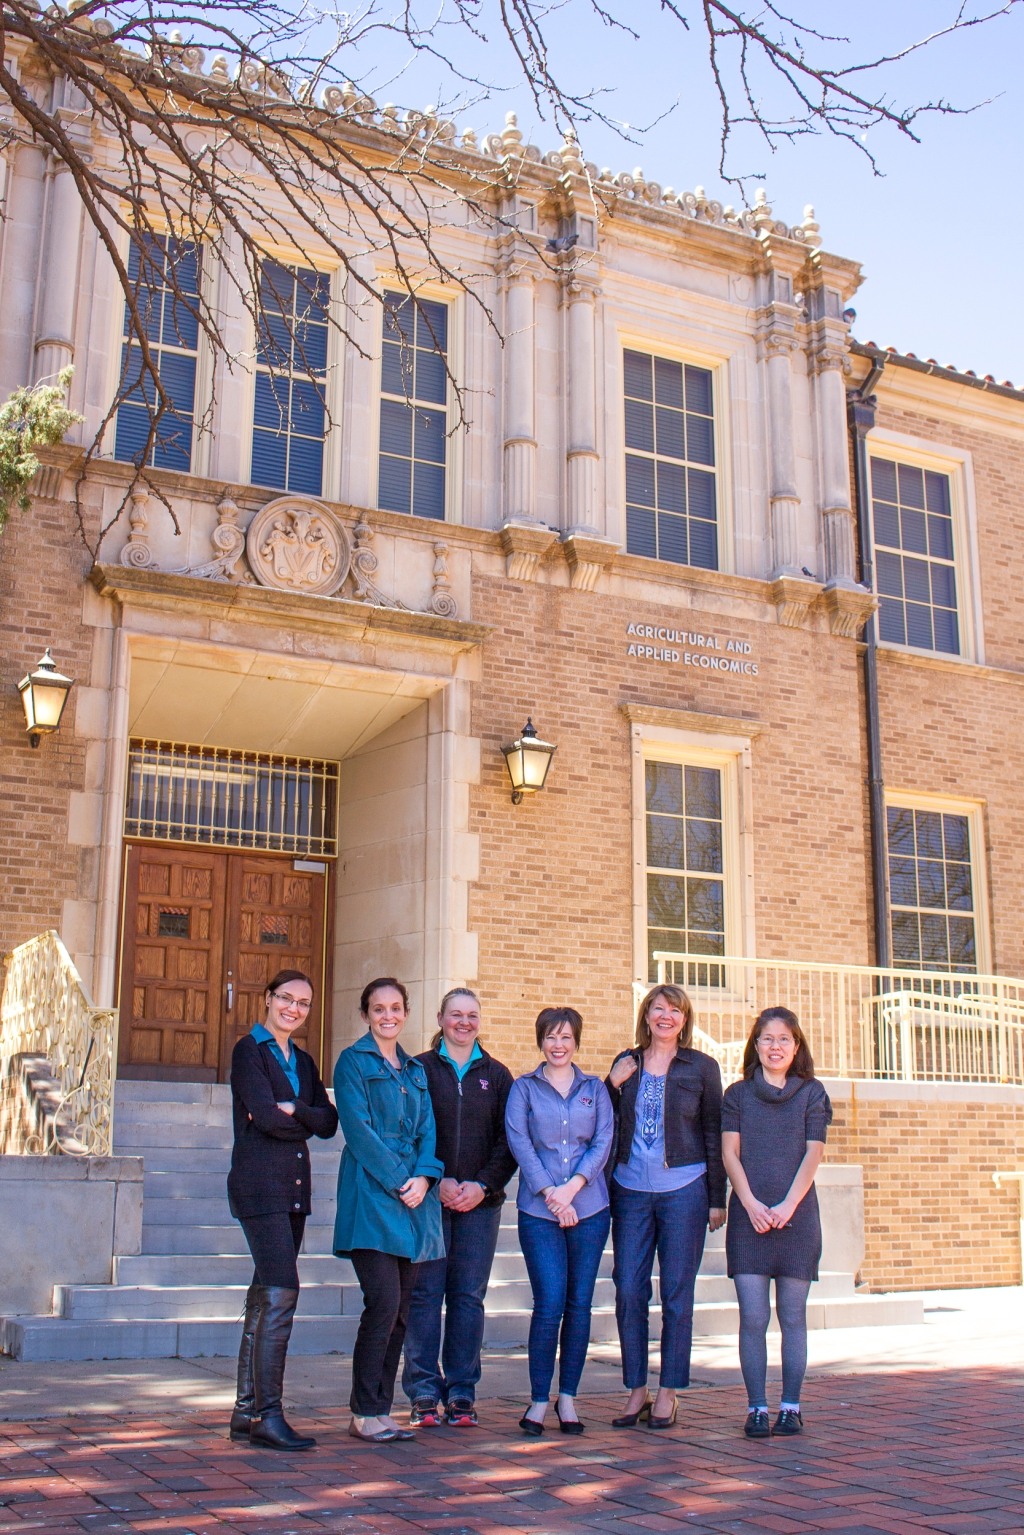 There are six women out of the 22 faculty members in the department. From left to right: Sanja Zivkovic, Ph.D., Jamie Bologna, Ph.D., Kelly Lange, Ph.D., Donna Mitchell, Ph.D., Olga Murova, Ph.D. Tullaya Boonsaeng, Ph.D.